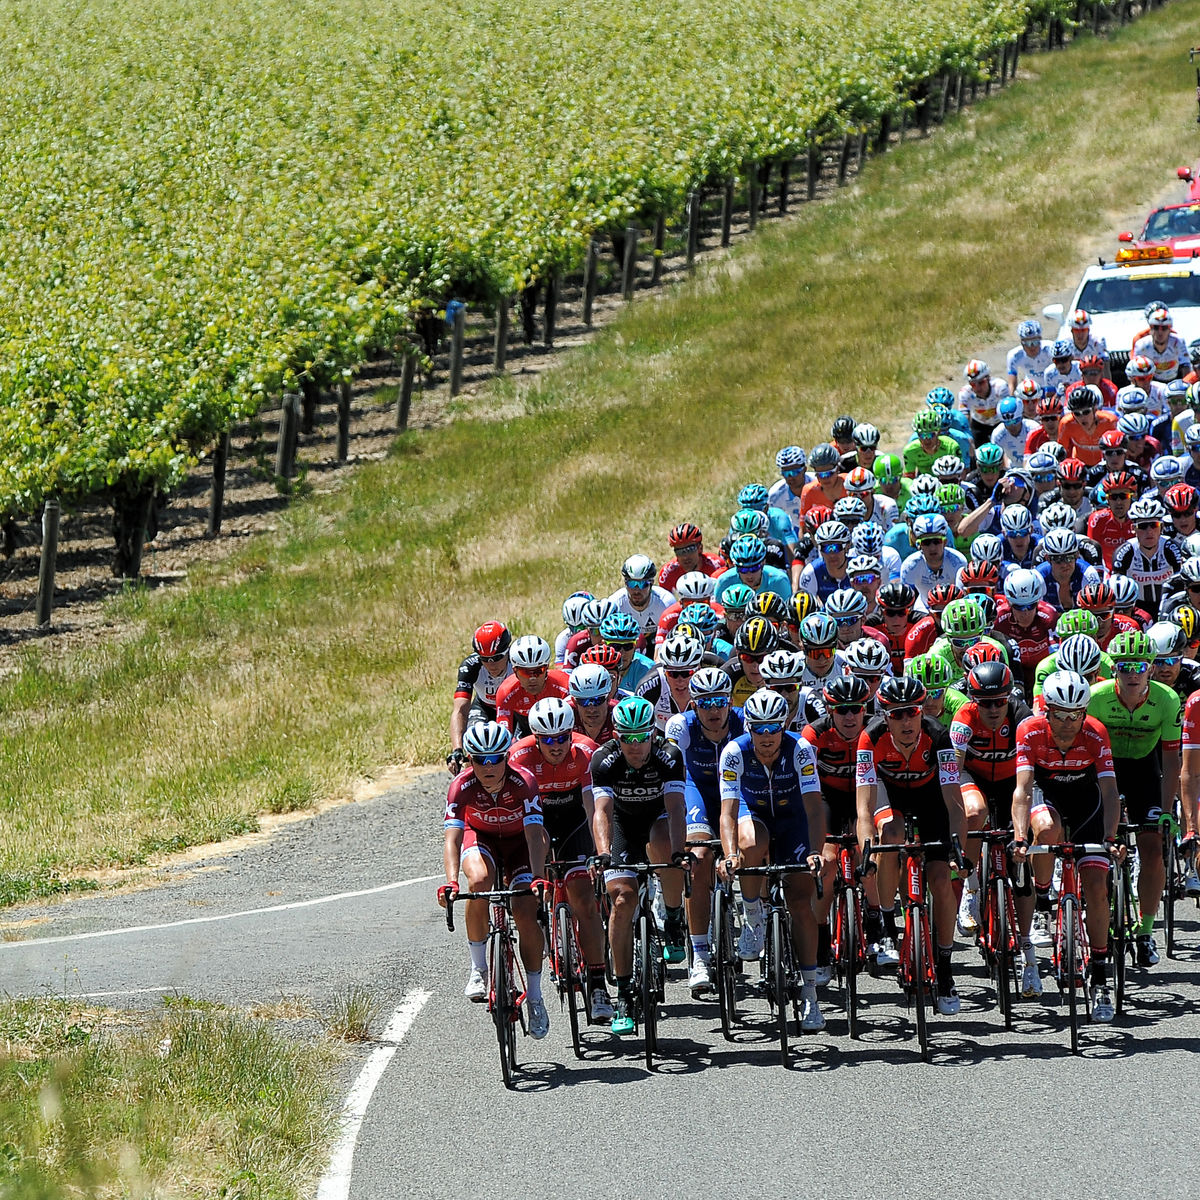 Group of bikes during Amgen Tour of California